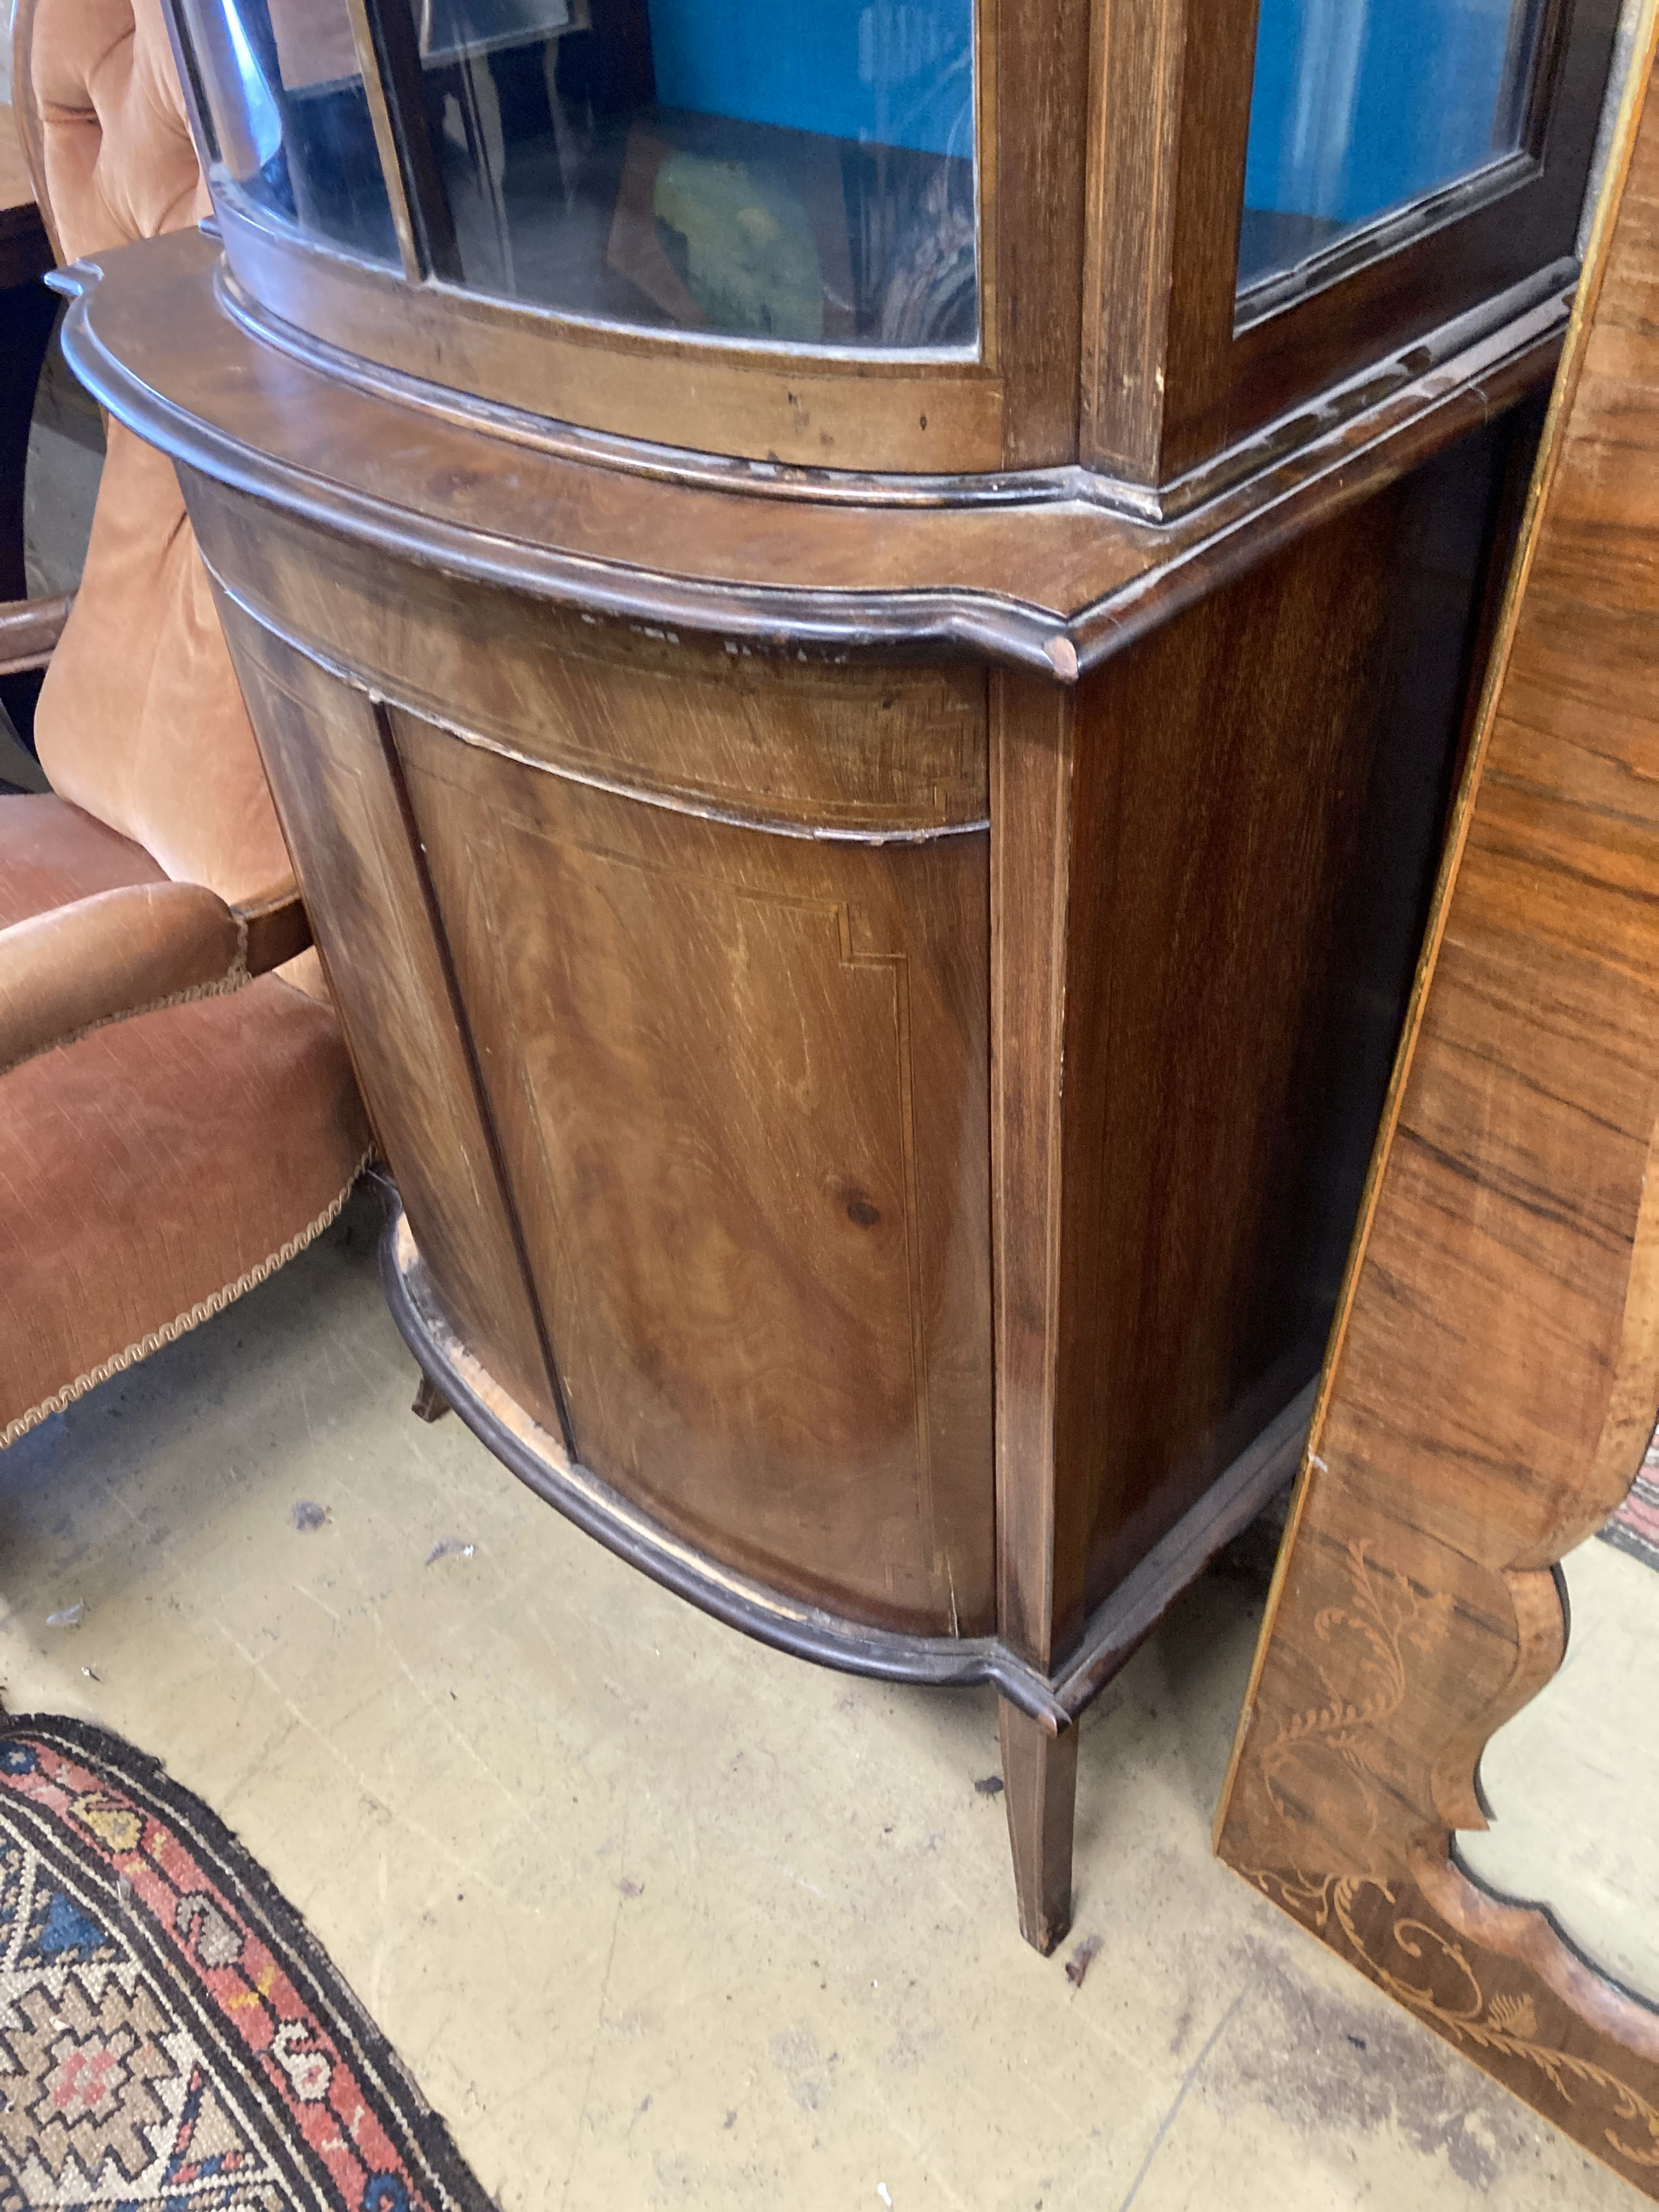 An Edwardian mahogany bowfront narrow display cabinet, width 60cm, depth 36cm, height 164cm - Image 3 of 4